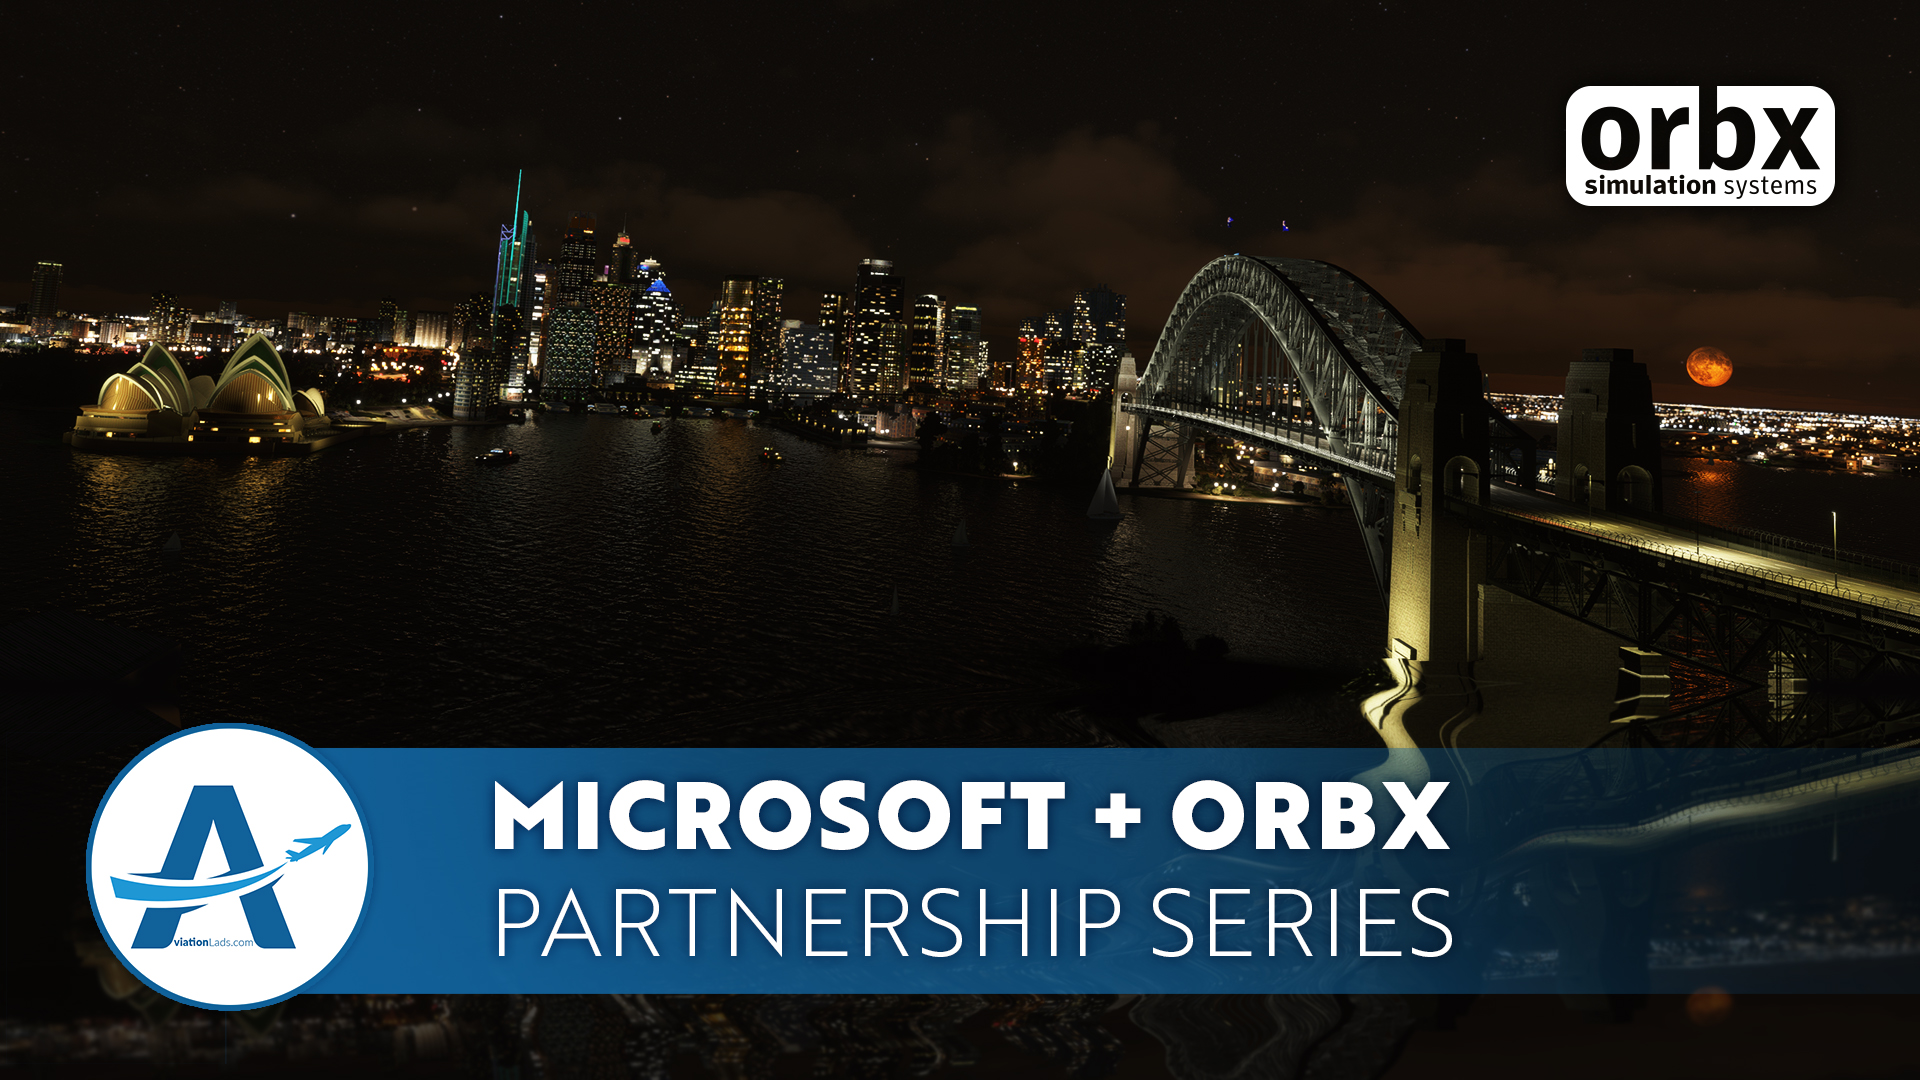 [TRAILER] Partnership Series – Orbx